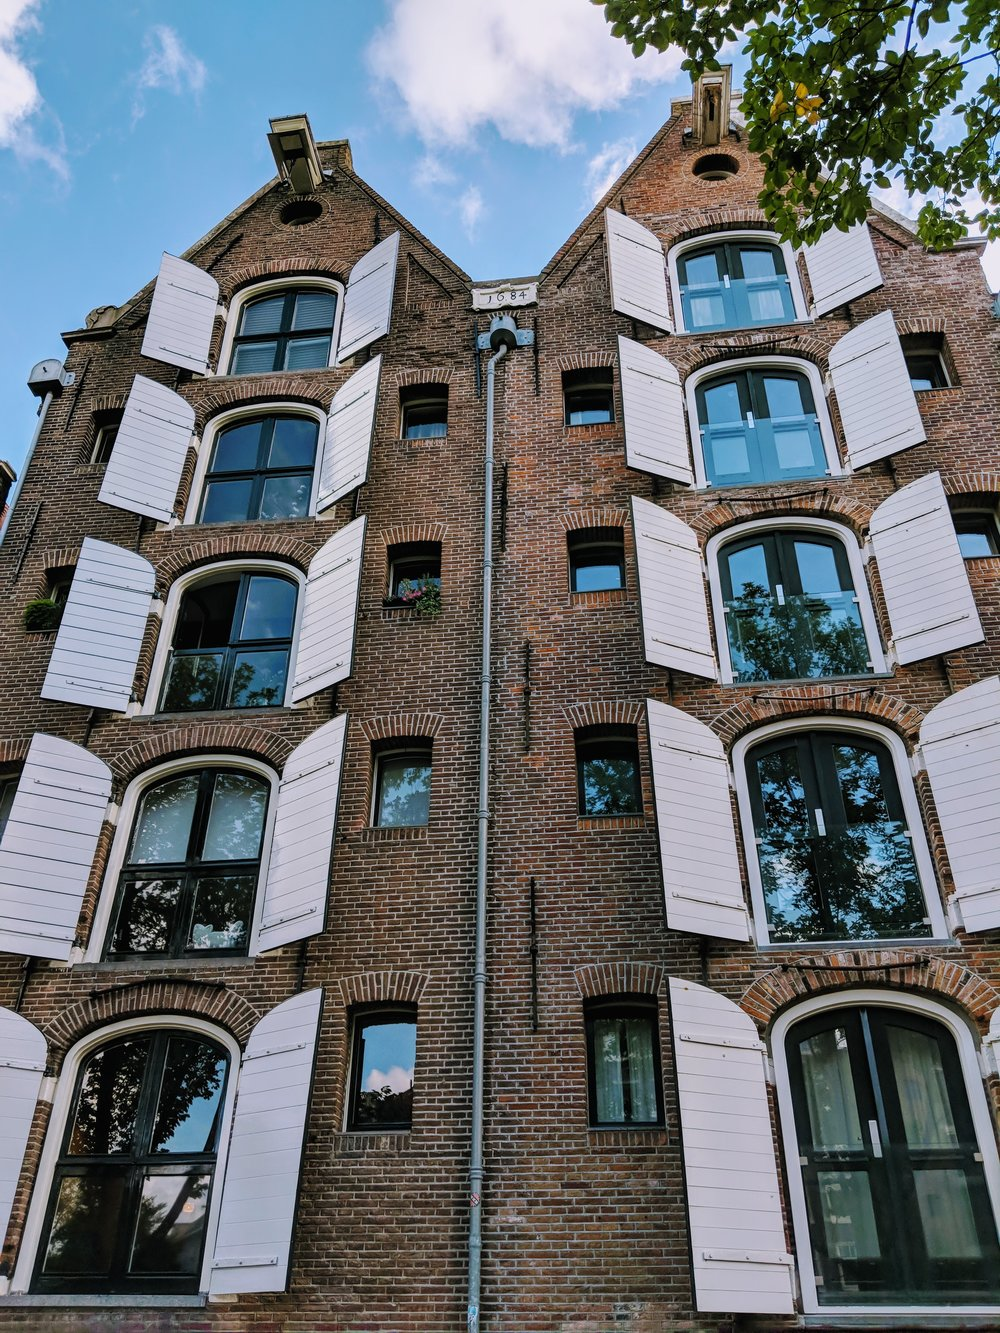 Canal houses with huge windows in Amsterdam